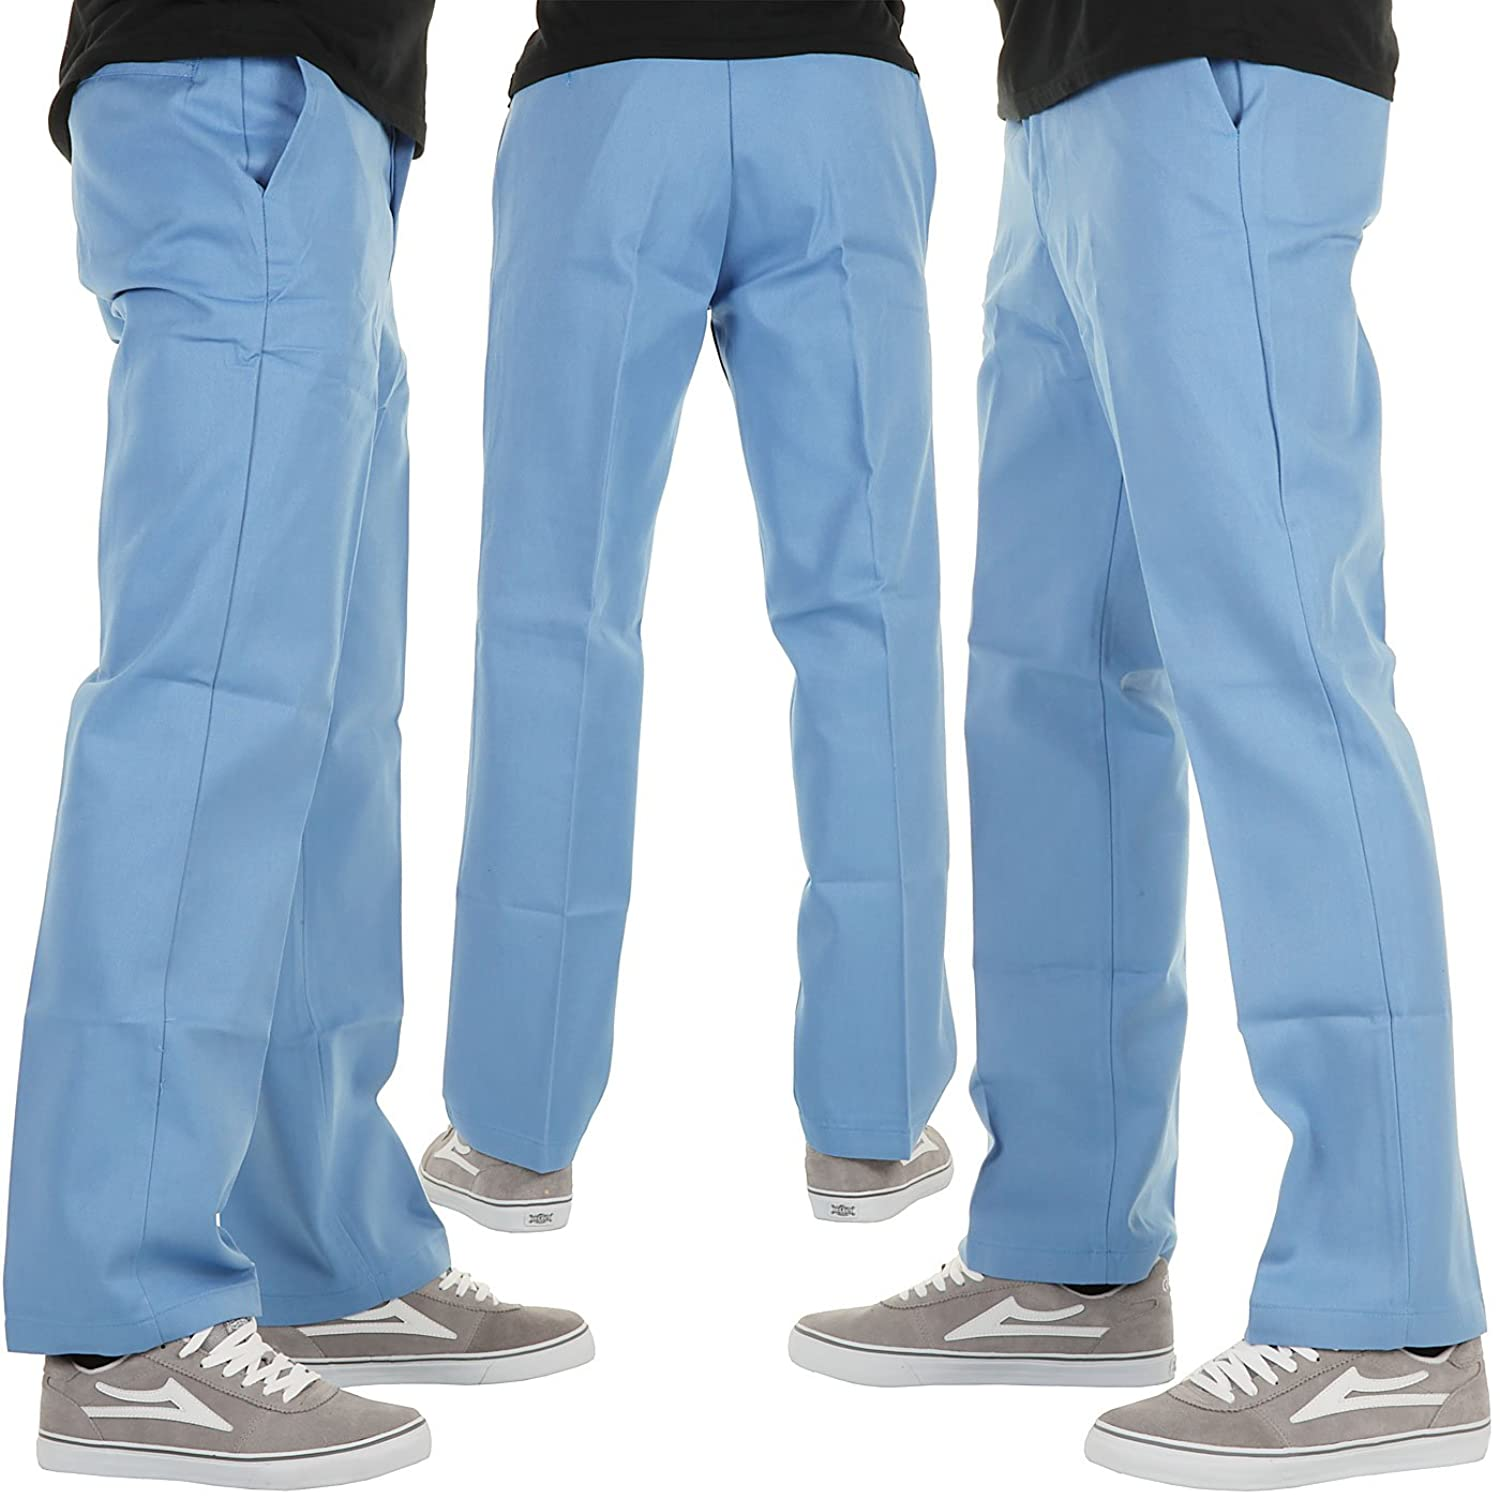 edgar pants front medical womens scrubs s scrub women essential james blue product apparel light